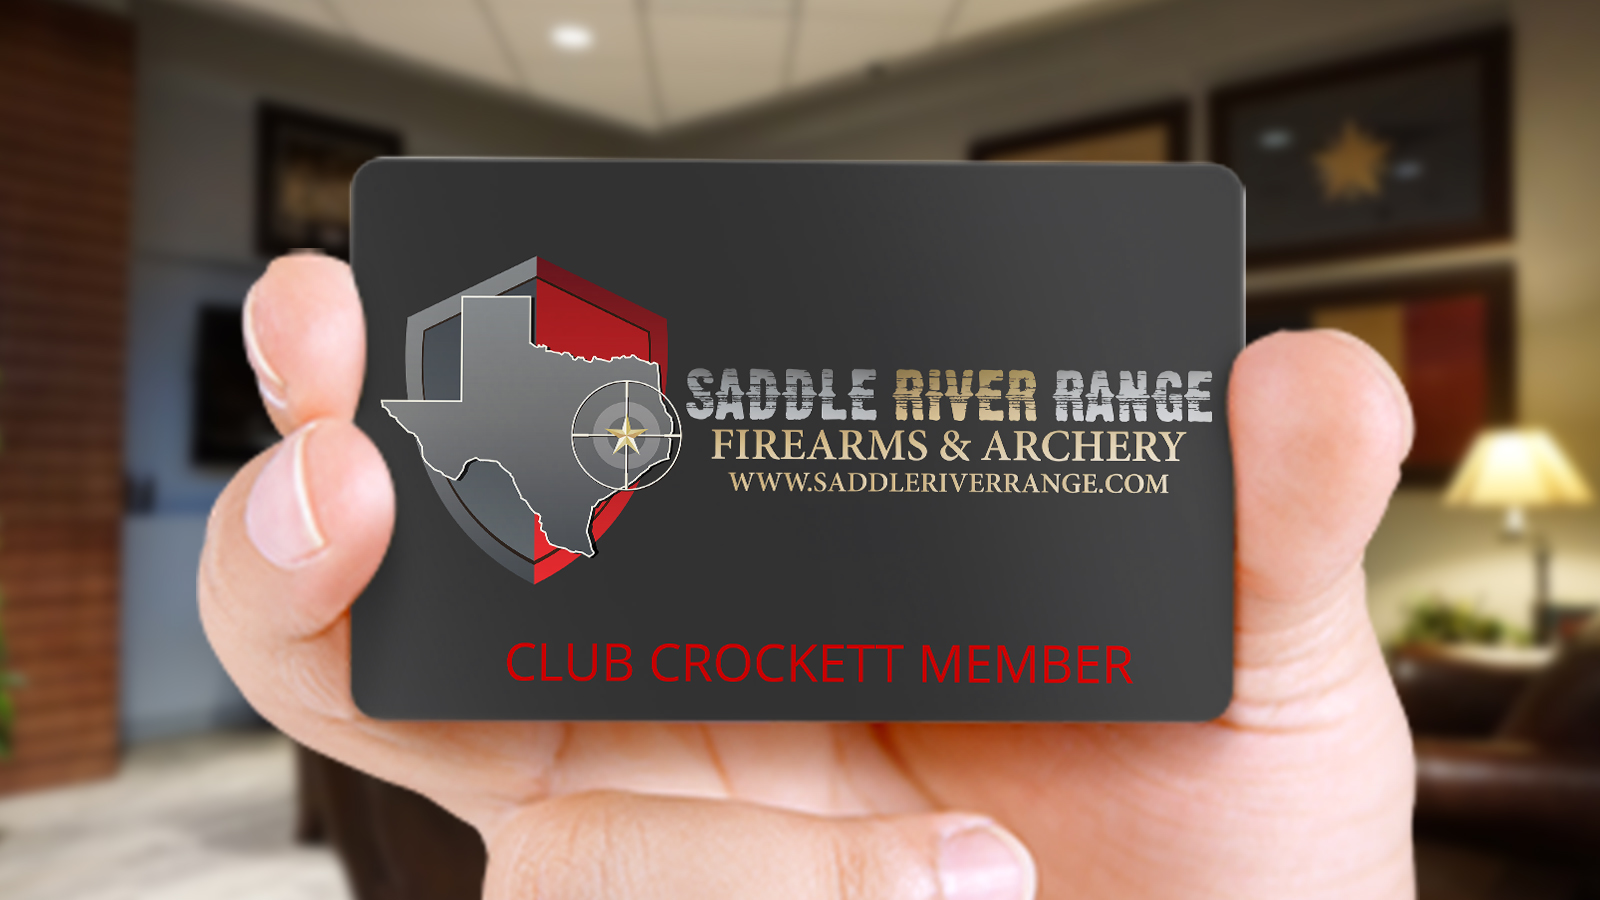 Club Crockett membership card gets you access to an exclusive gun club with private lanes